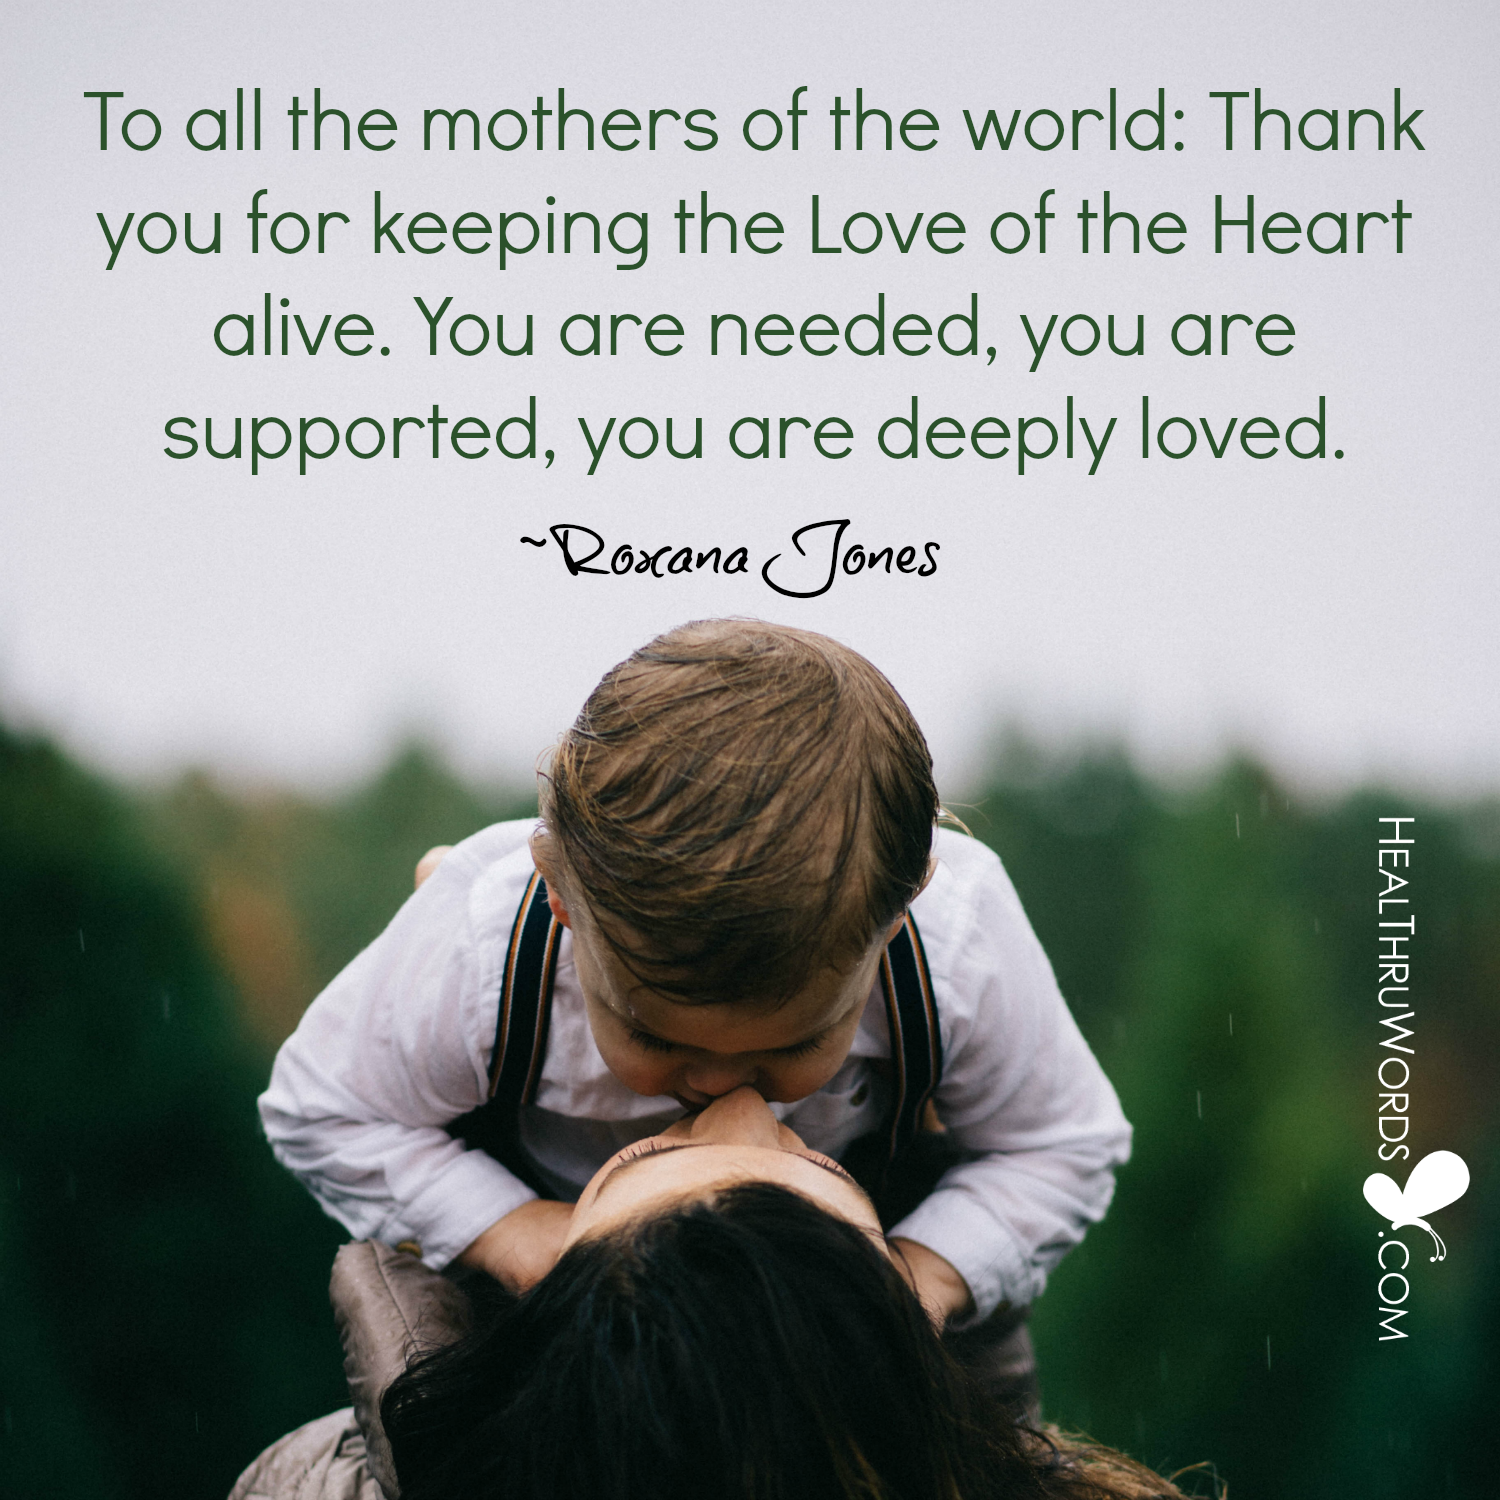 Inspirational Image: Heartful Motherhood